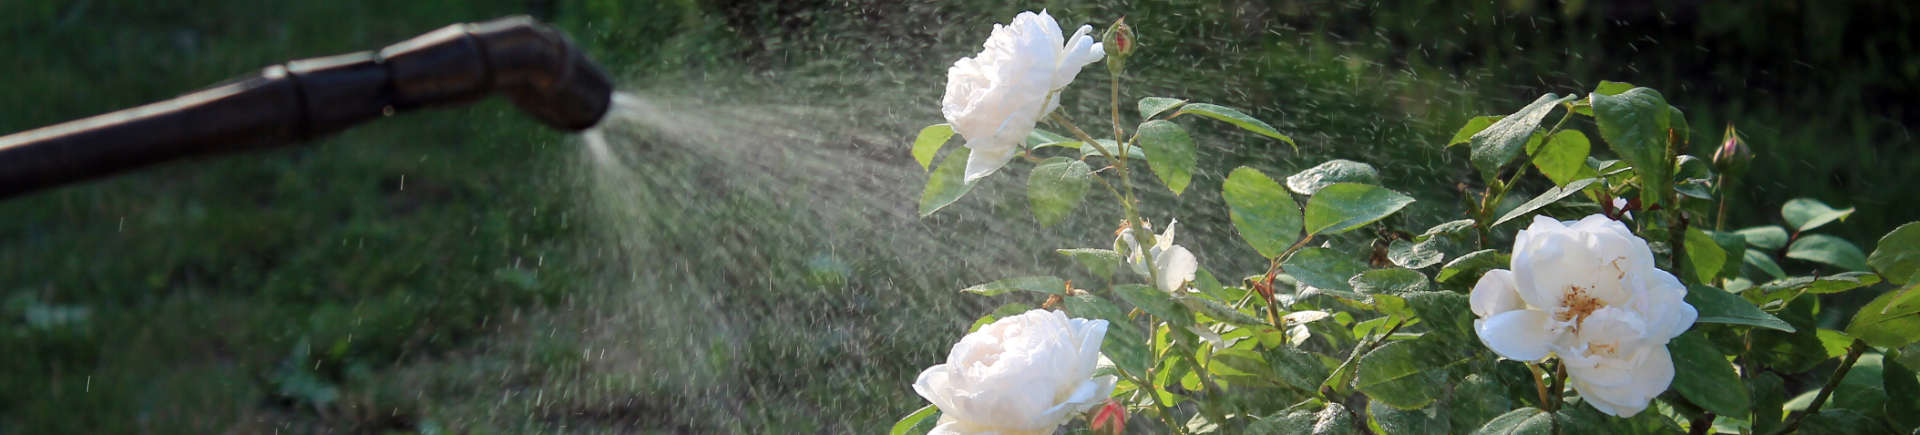 Alpharetta GA professional spraying white roses to protect them from shrub disease